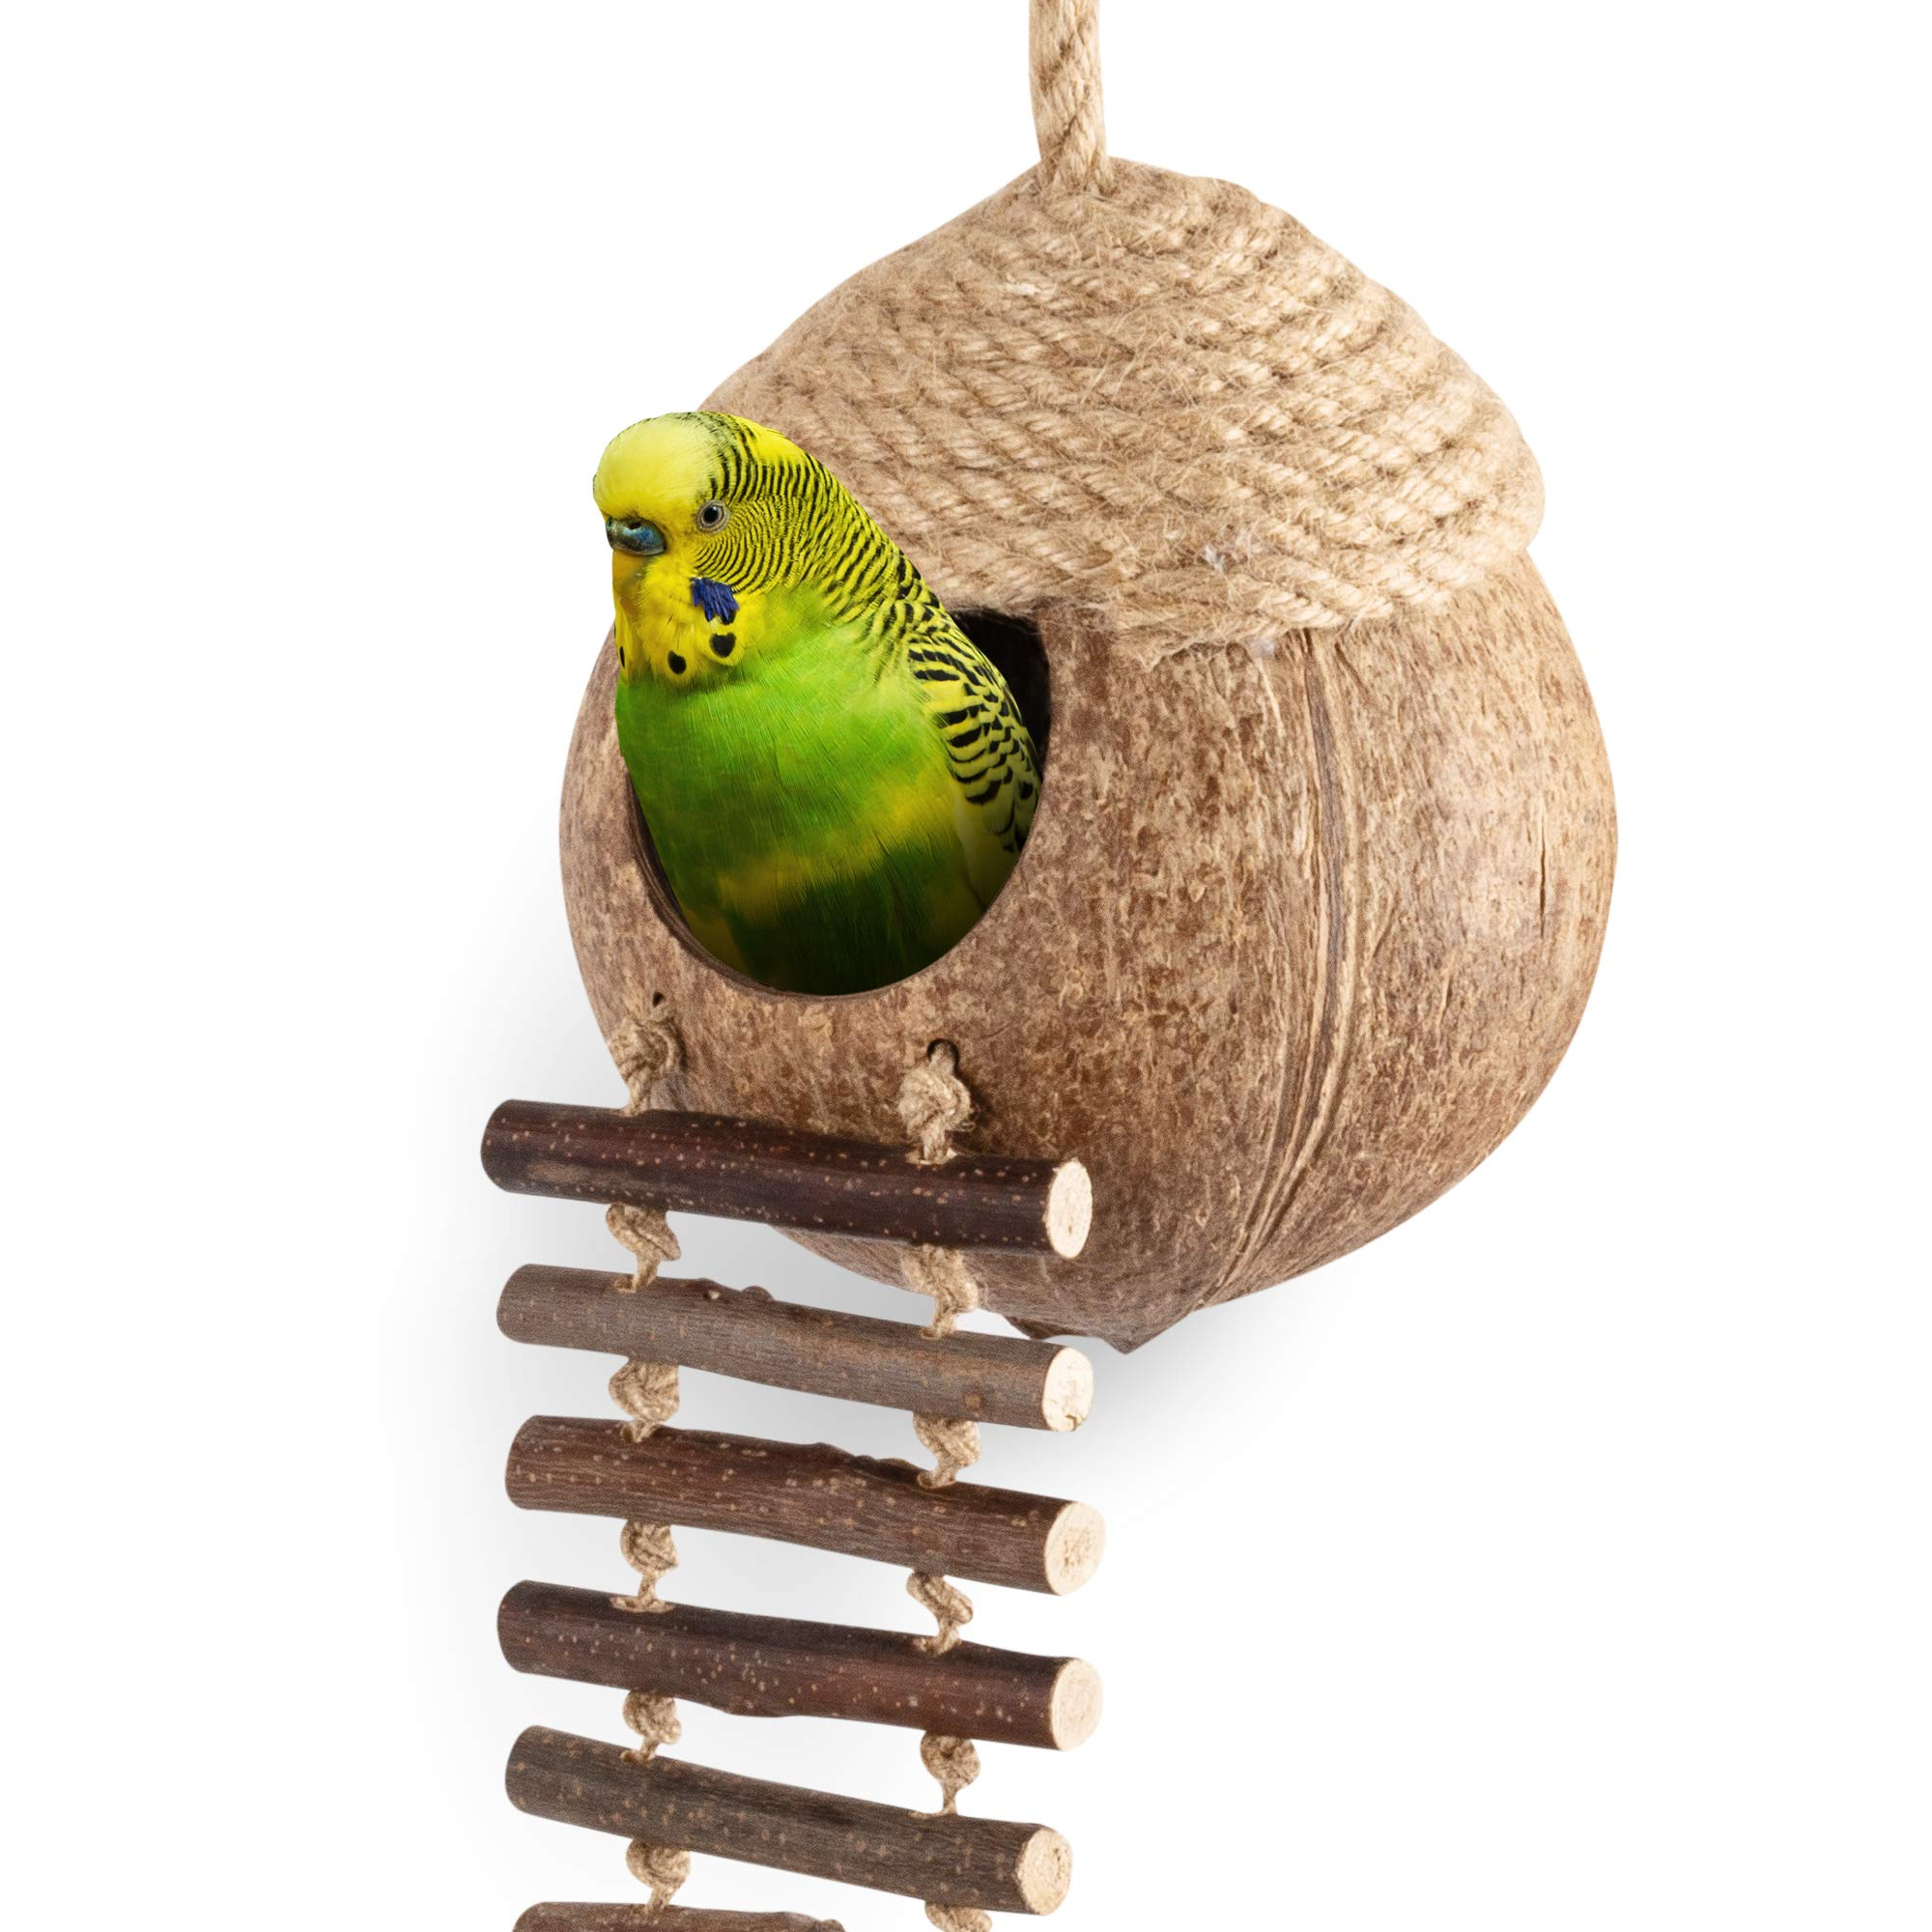 andwe Coconut Bird Nest Hut with Ladder for Parrots Parakeet Conures Cockatiel – Small Animals House Pet Cage Habitats…